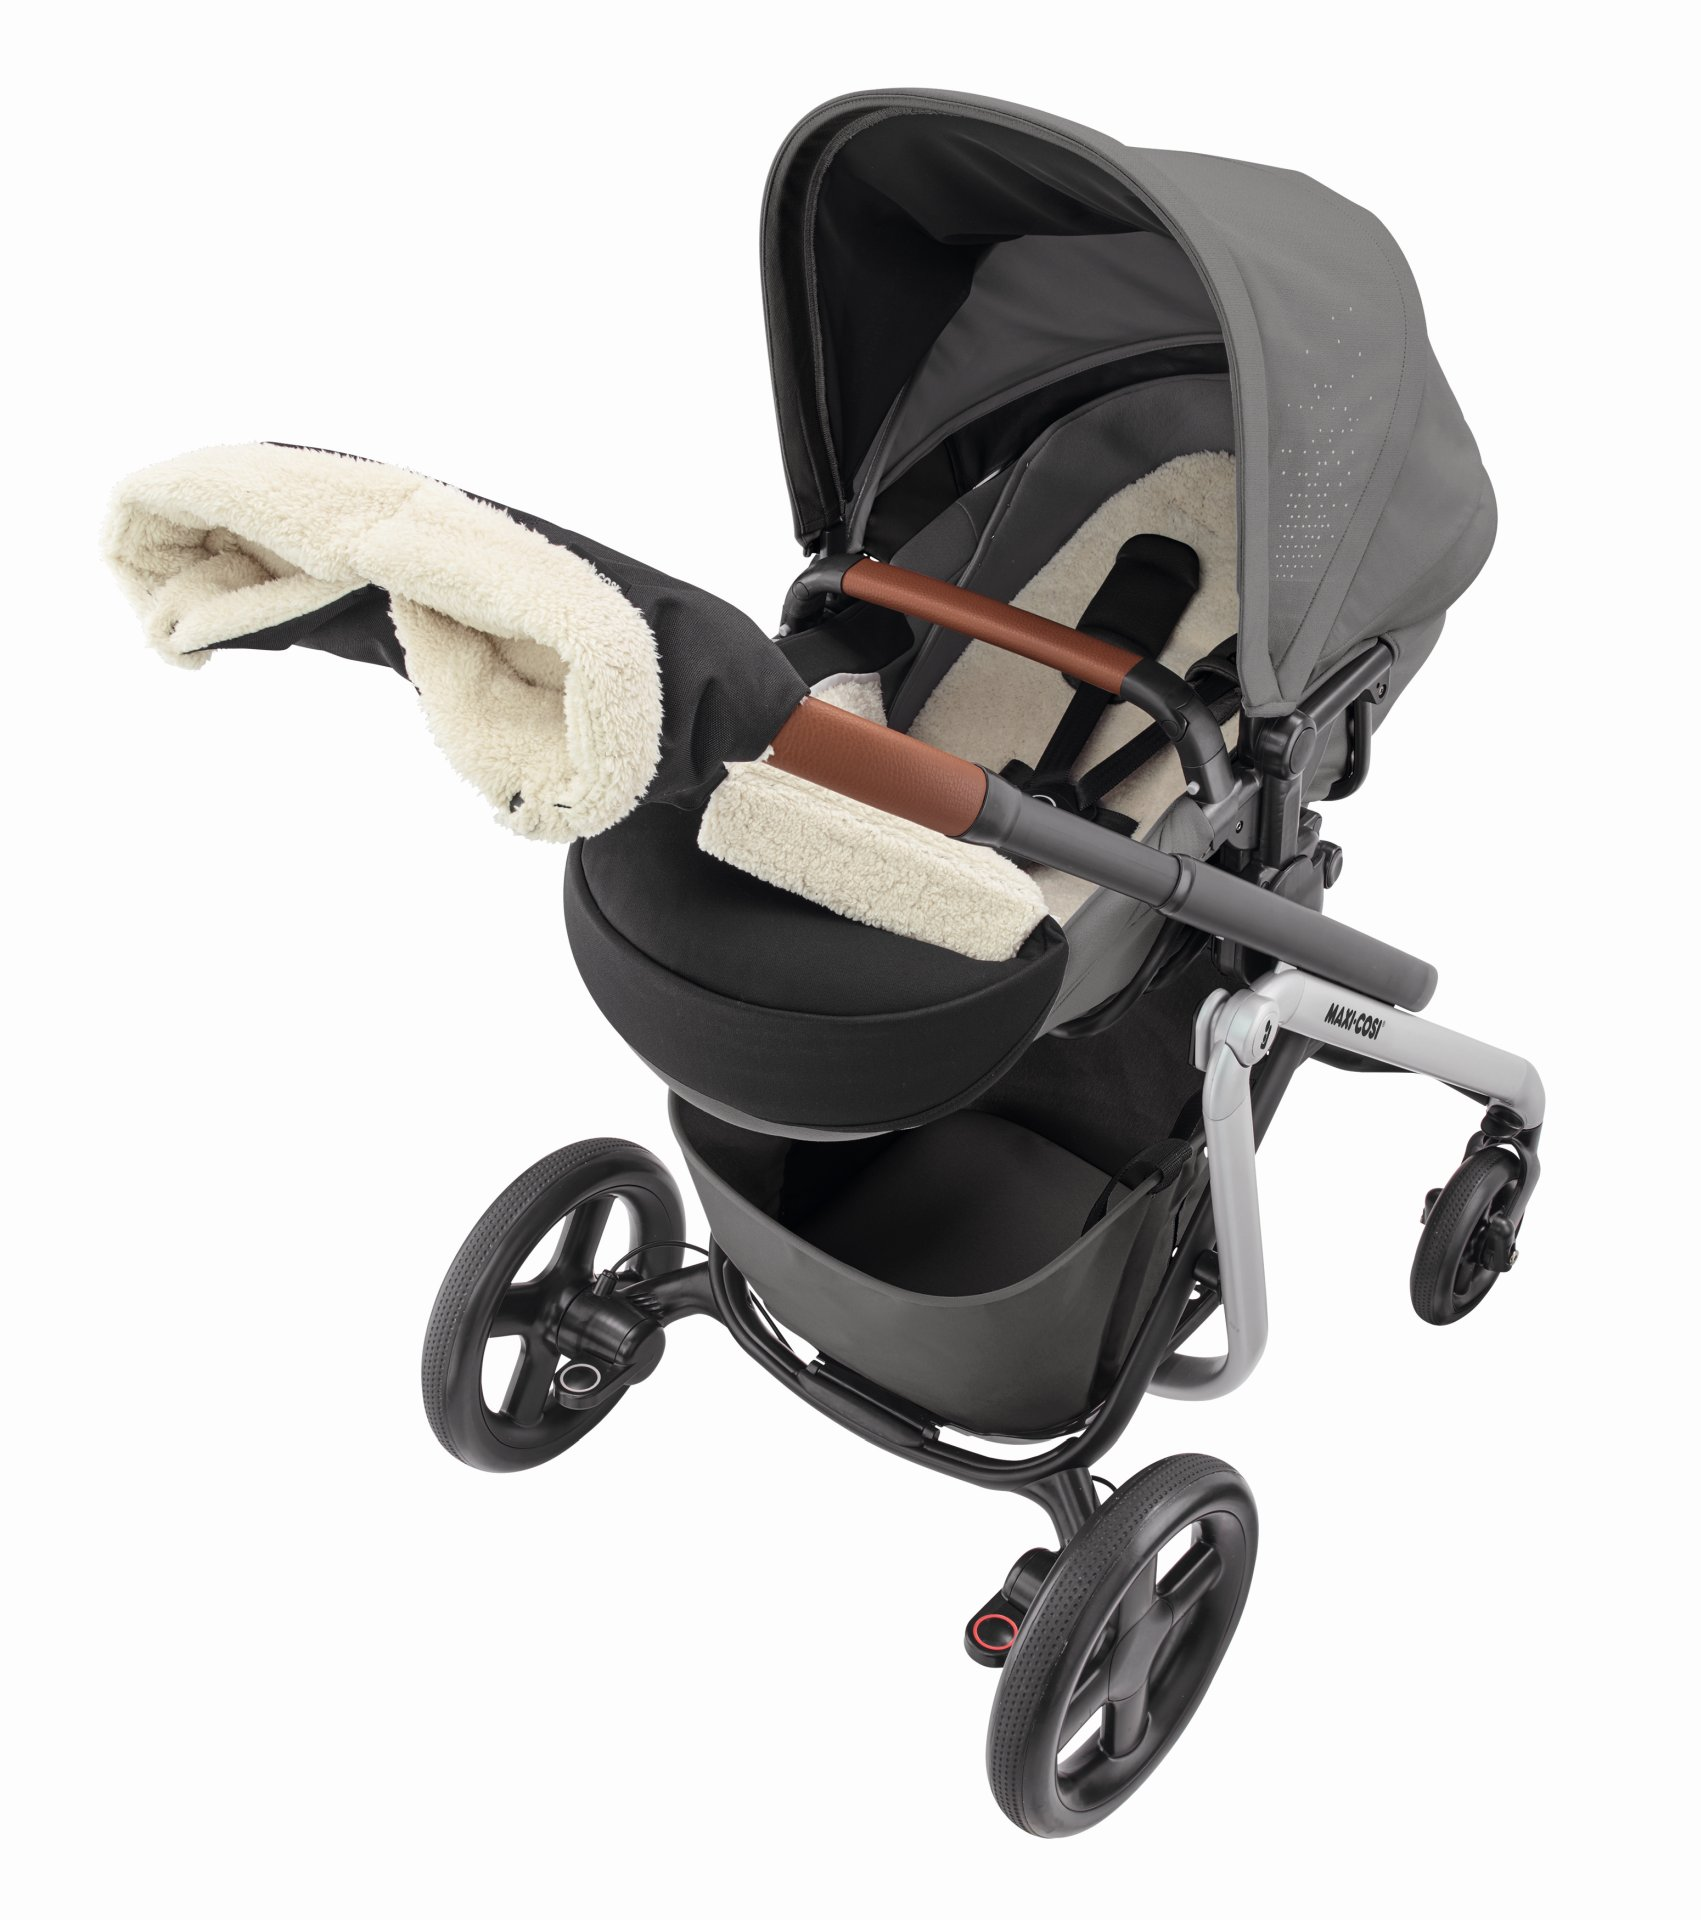 maxi cosi winter set for stroller lila buy at kidsroom strollers stroller accessories. Black Bedroom Furniture Sets. Home Design Ideas